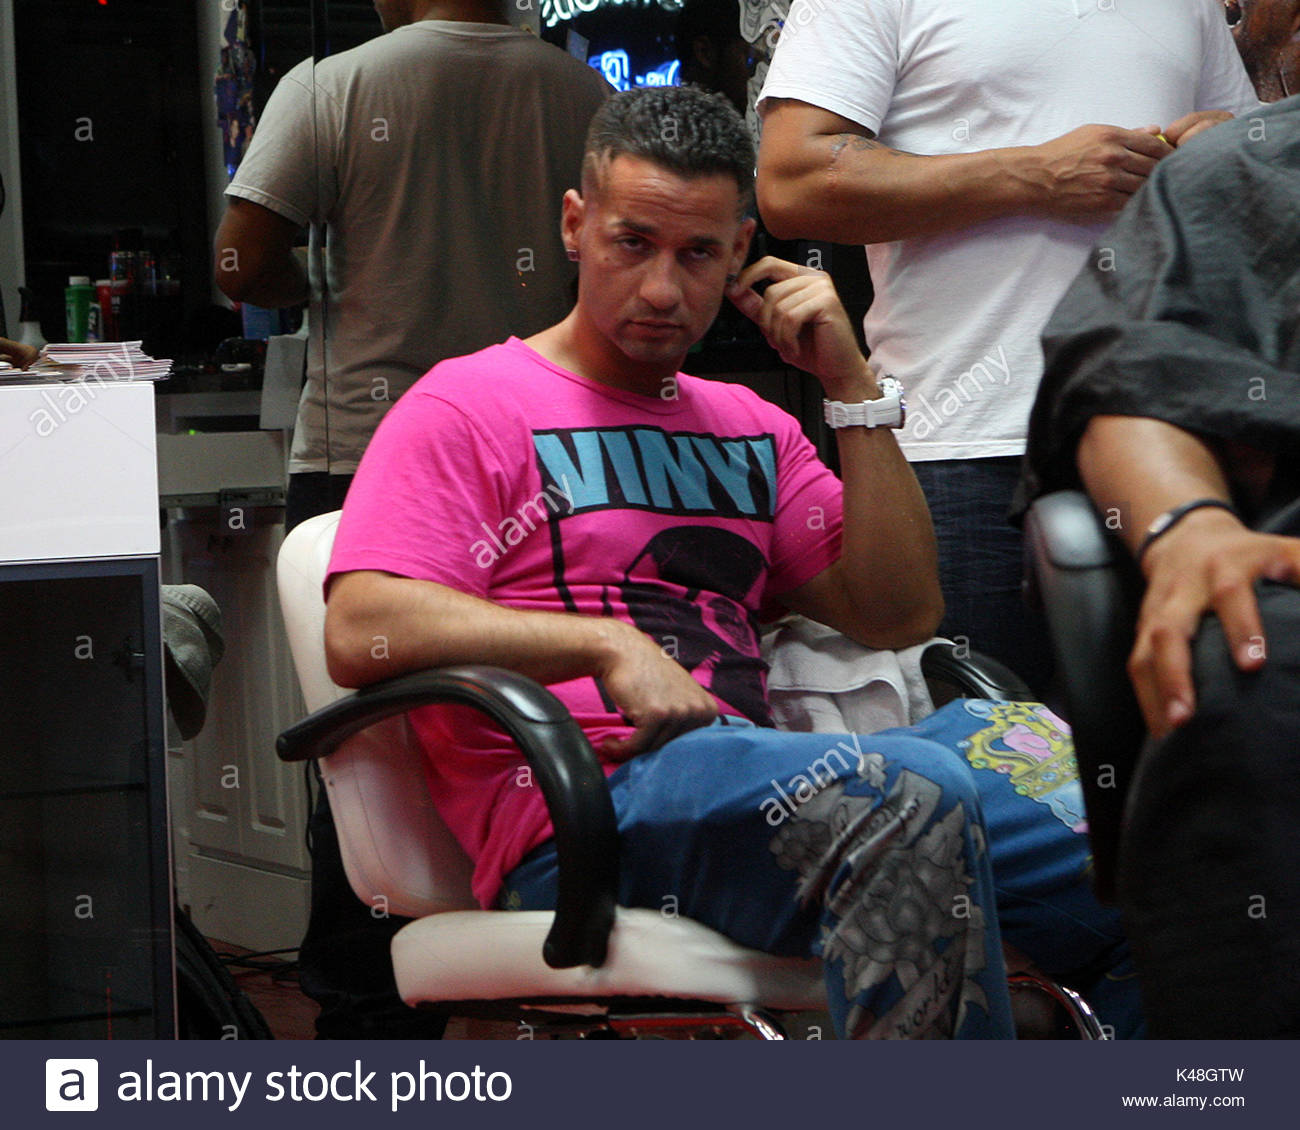 Mike The Situation Sorrentino The Guys Of The Jersey Shore Cast